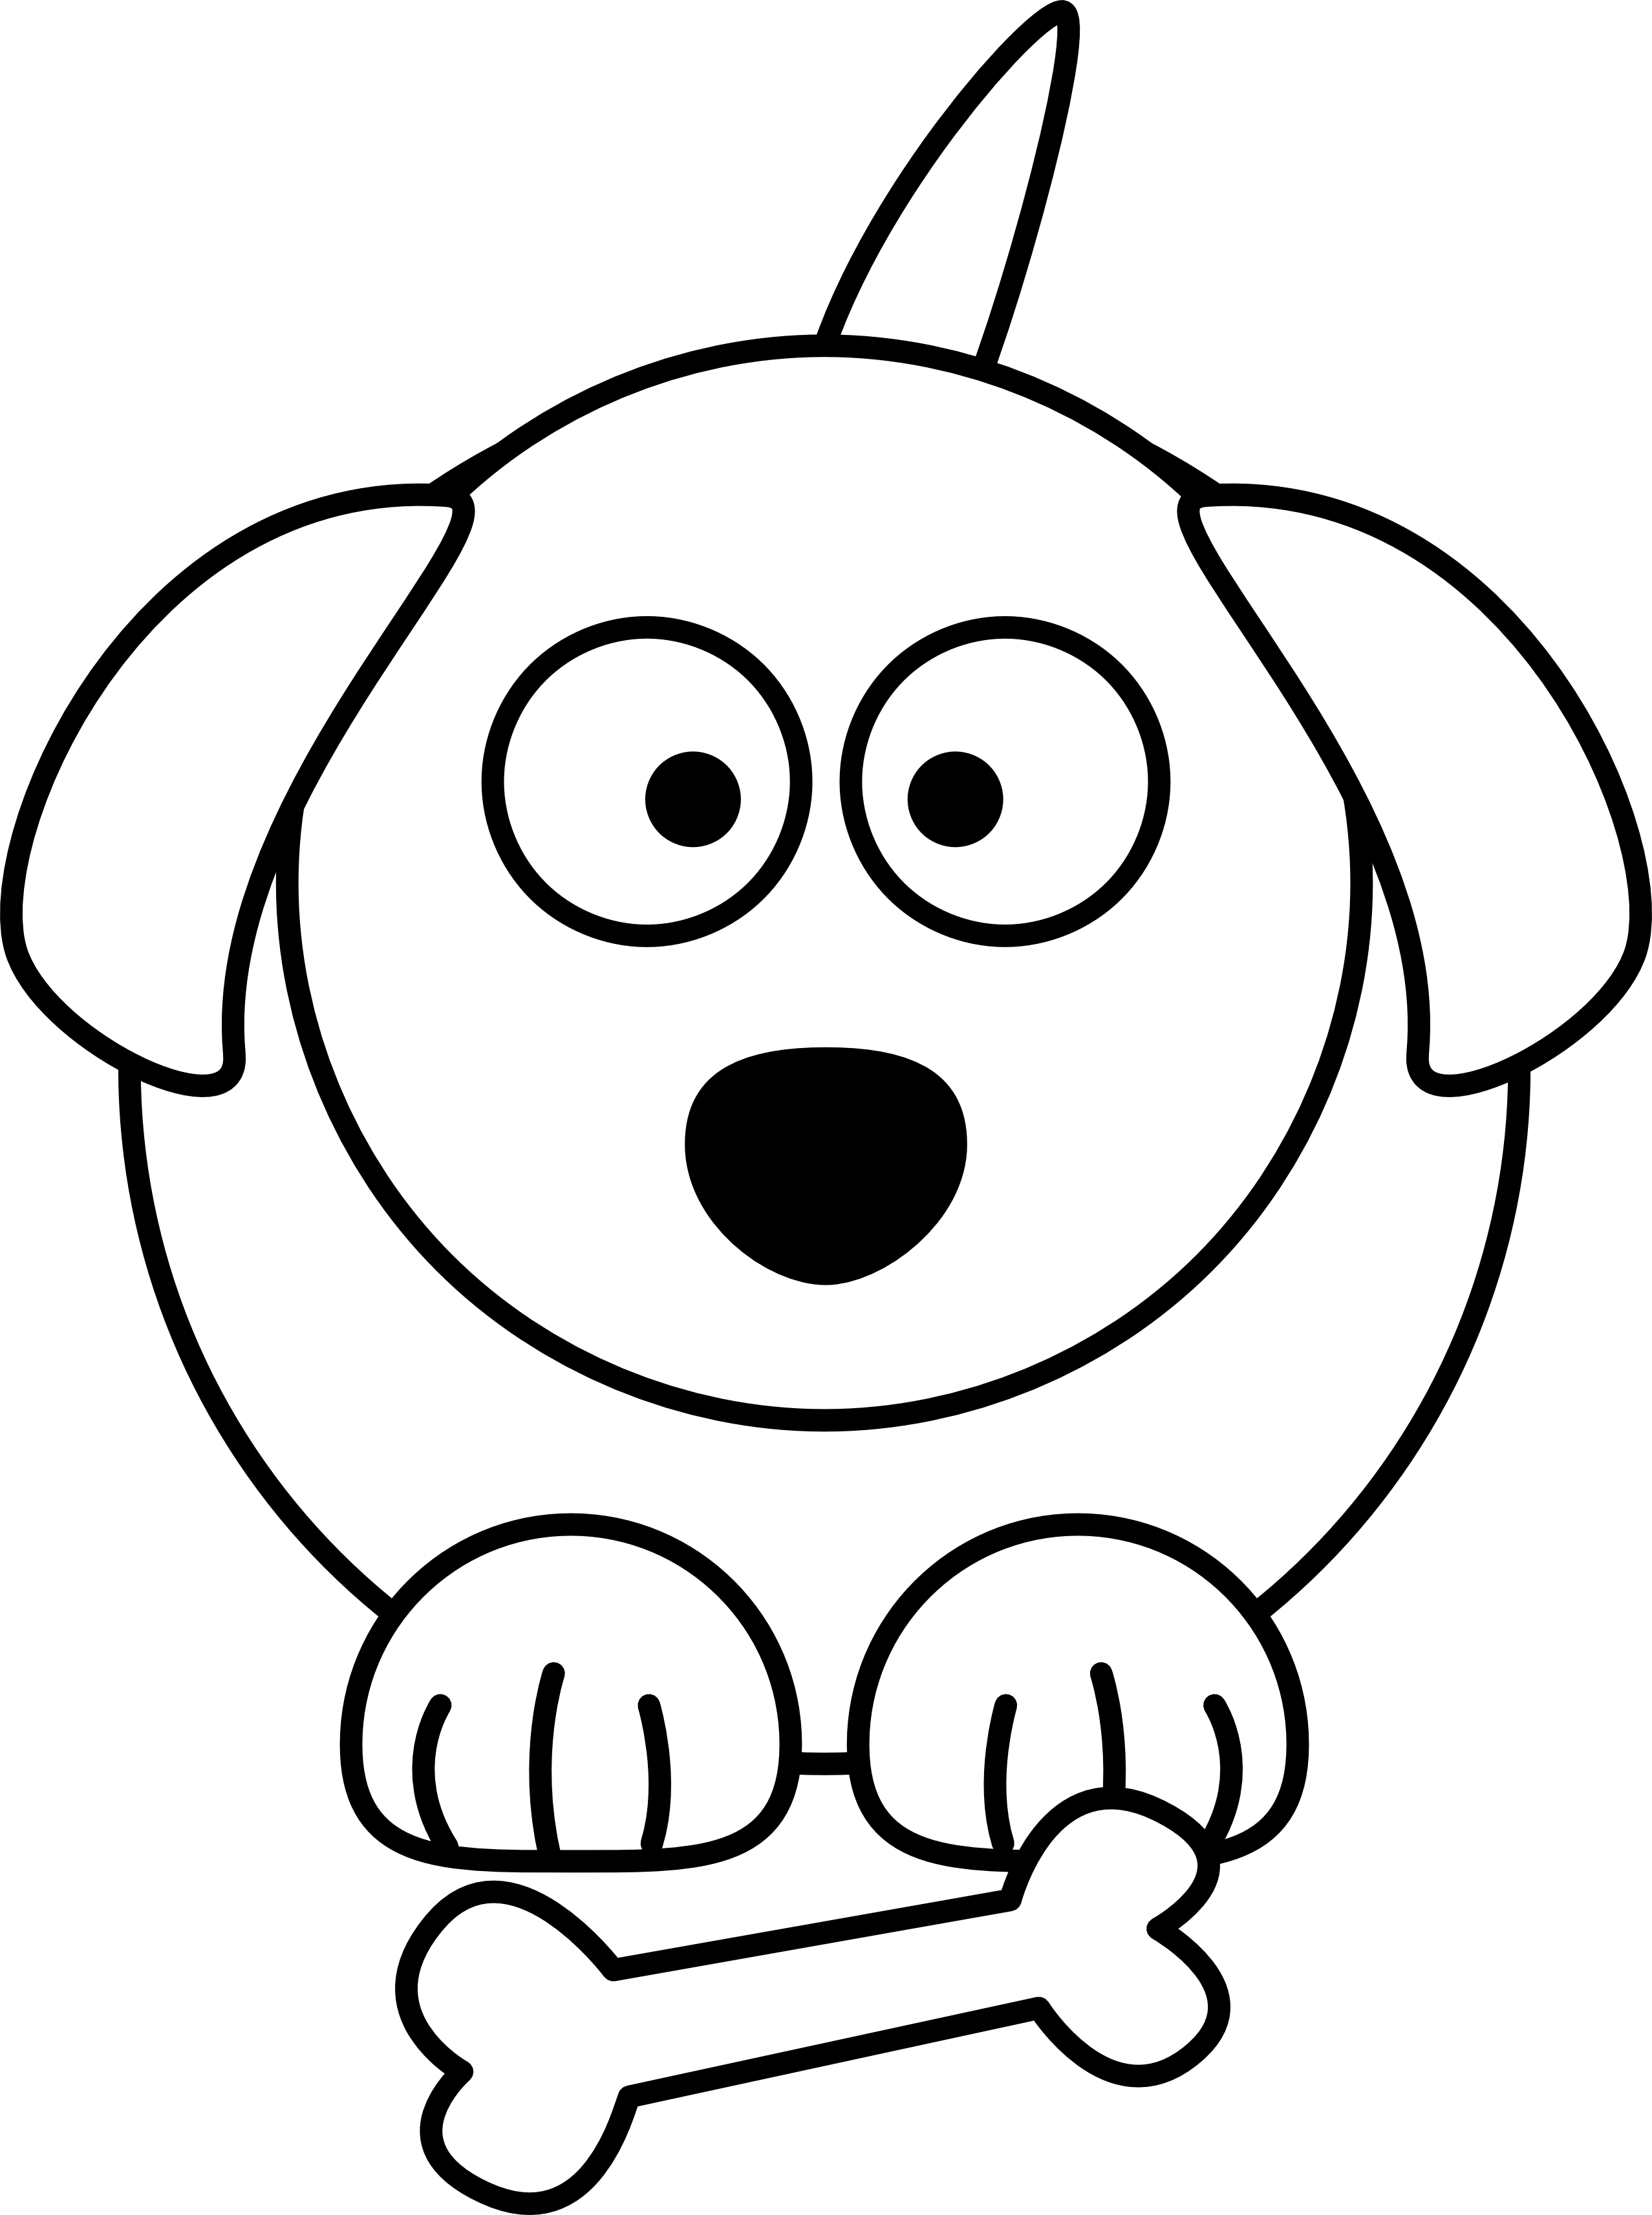 Dog Black And White Black And White Dog Cartoon Free Cartoon Dog Line Drawing Clipart Full Size Clipart 4068 Pinclipart